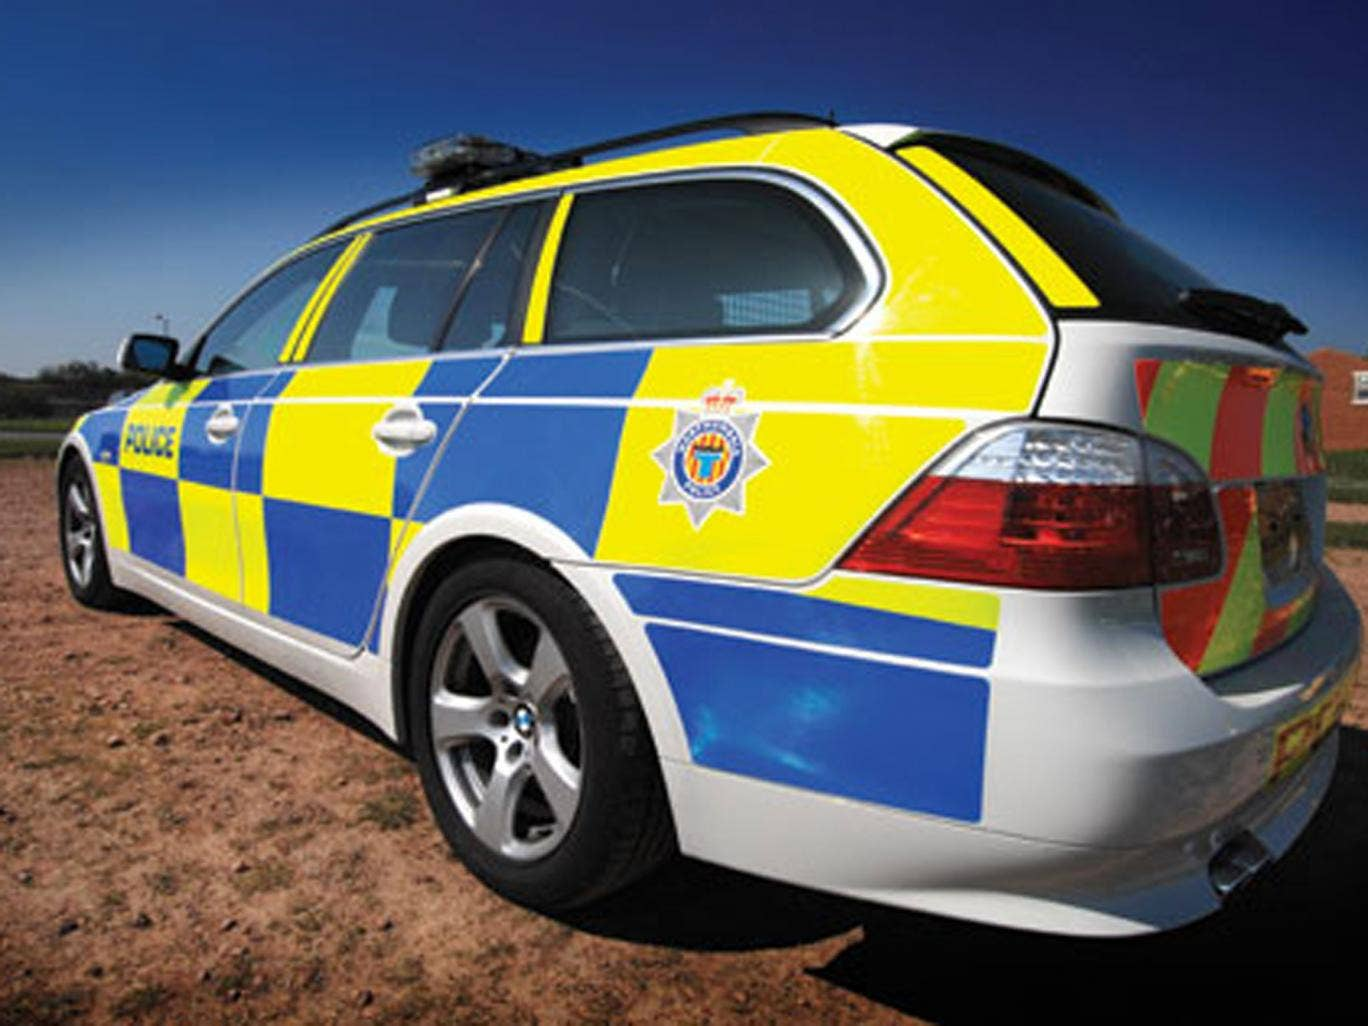 Northumbria Police issued a statement appealing for witnesses after an 84-year-old woman crashed and died while driving the wrong way down the A1